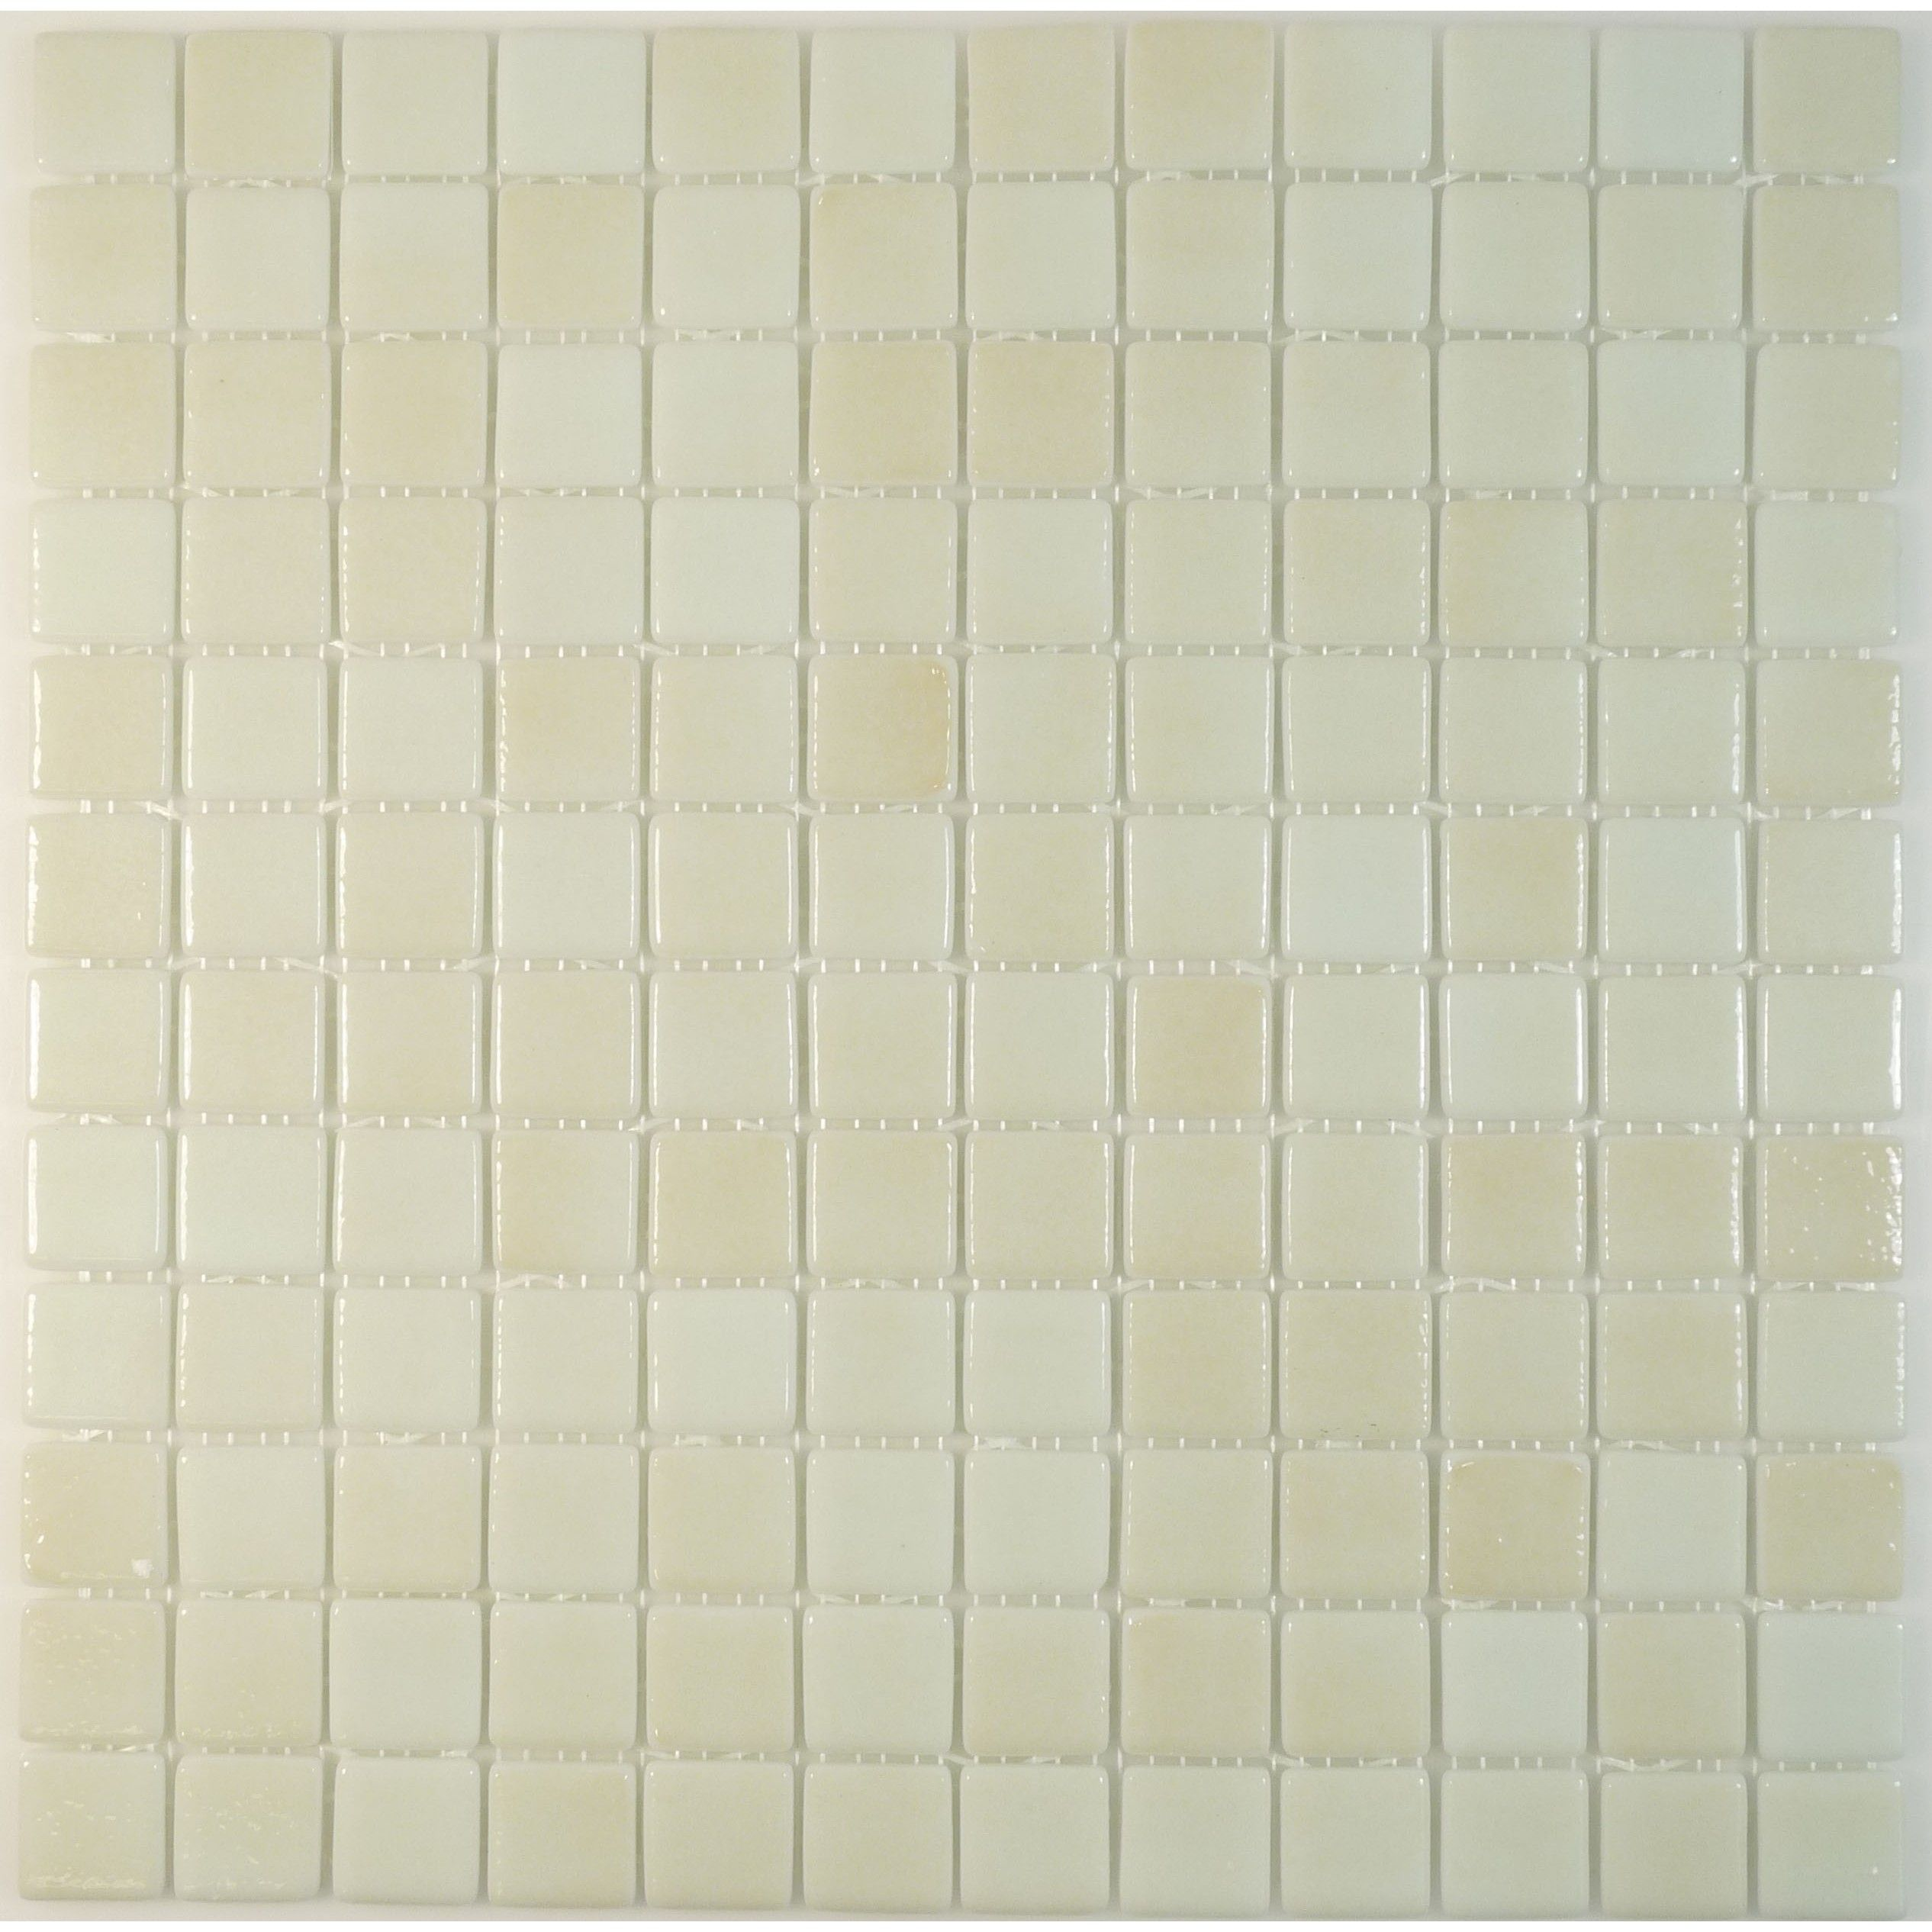 Sheet Size 12 1 4 X 12 1 4 Tile Size 1 X 1 Tiles Per Sheet 144 Tile Thickness 1 8 Grout Joints Tiles Square Tile Glass Tile